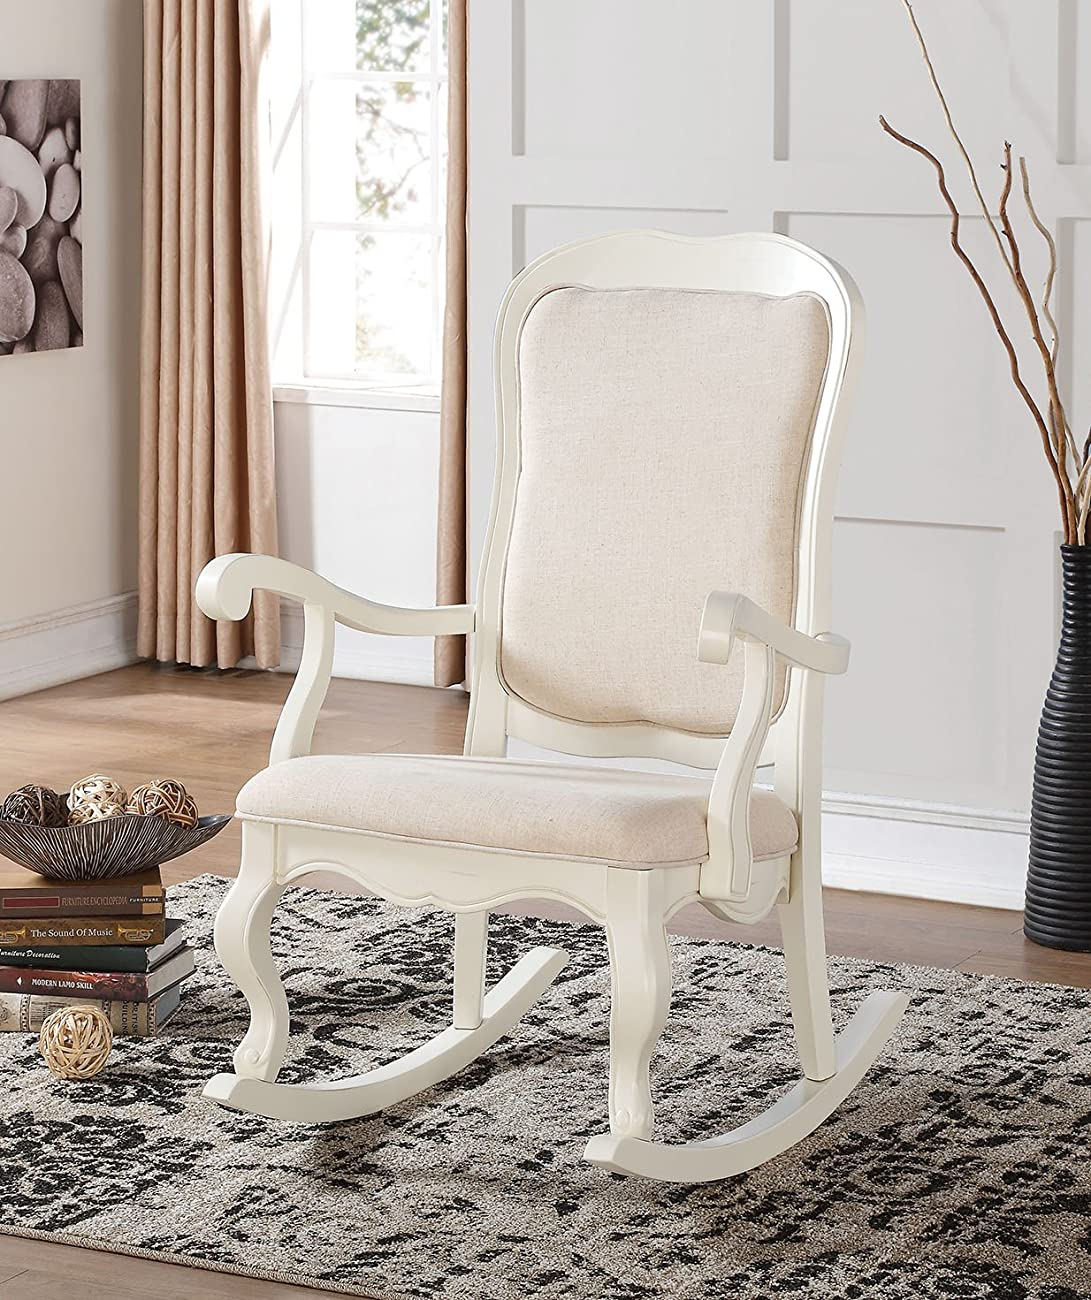 ACME Furniture 59388 Sharan Rocking Chair, Antique white 0